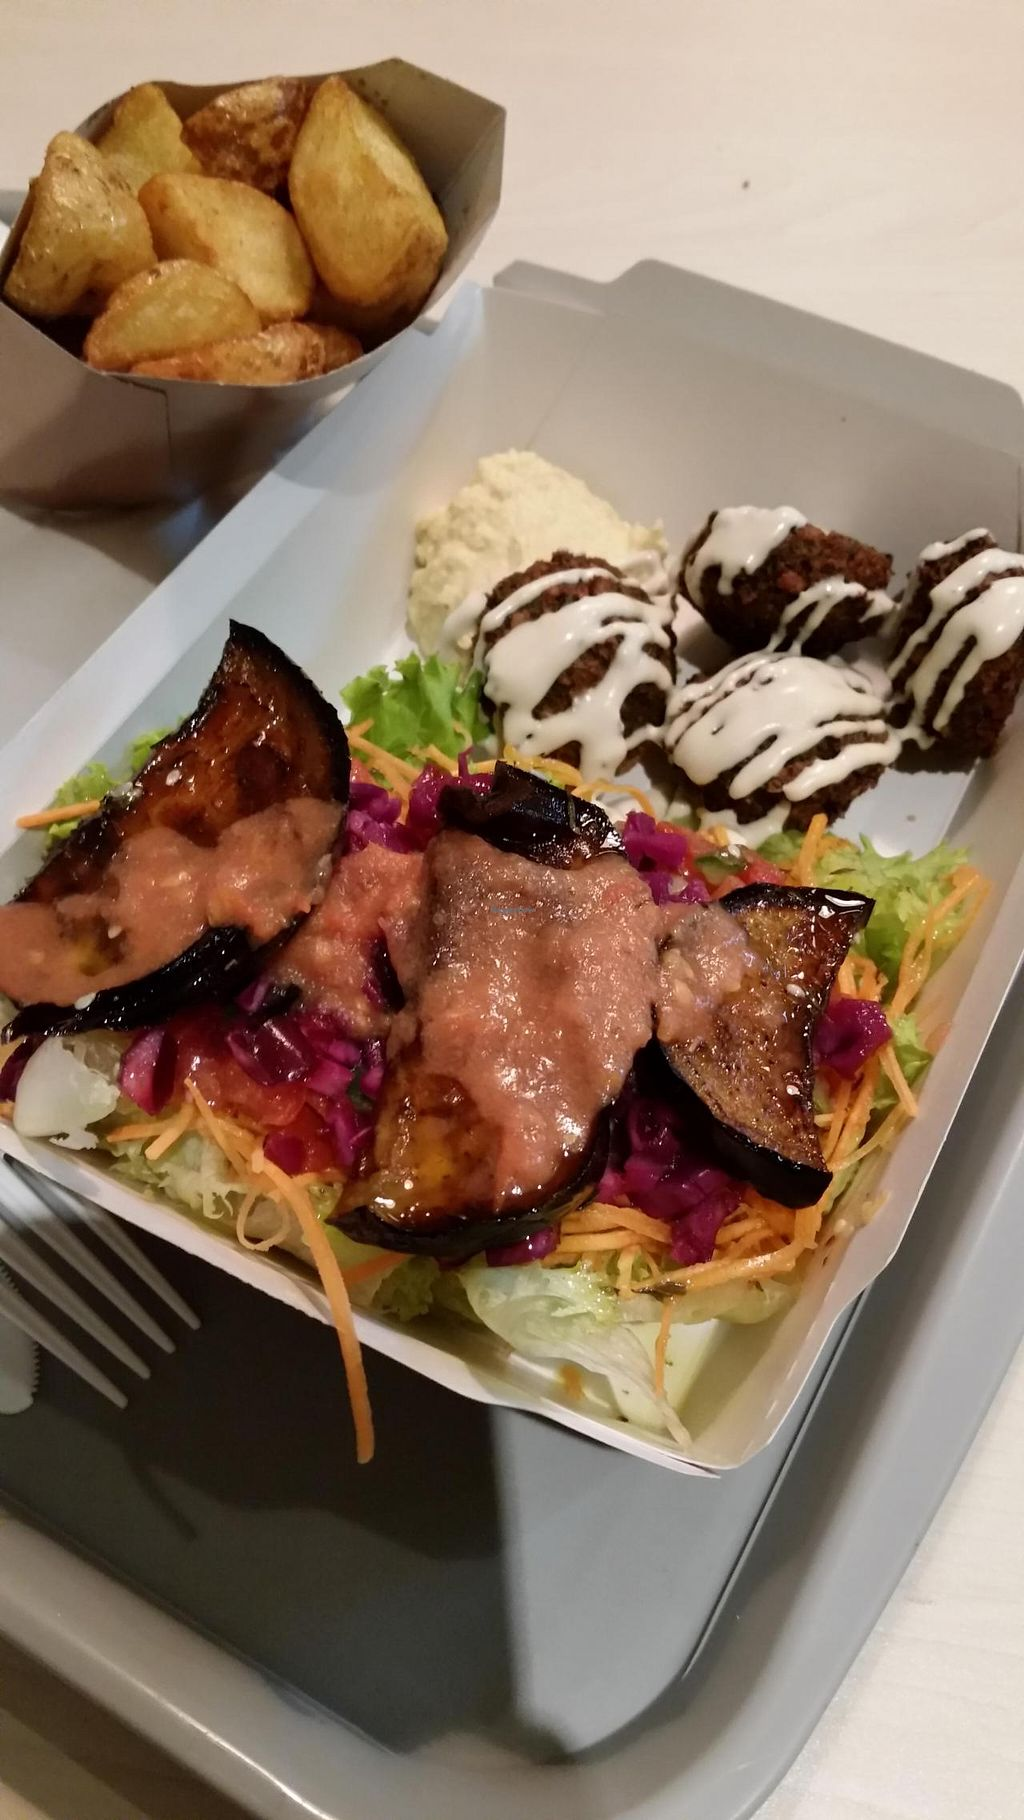 """Photo of Yaafa - D'Algerie  by <a href=""""/members/profile/stephaniekh"""">stephaniekh</a> <br/>Falafel plate at Yaafa. The eggplant was especially good <br/> January 10, 2015  - <a href='/contact/abuse/image/36881/90036'>Report</a>"""